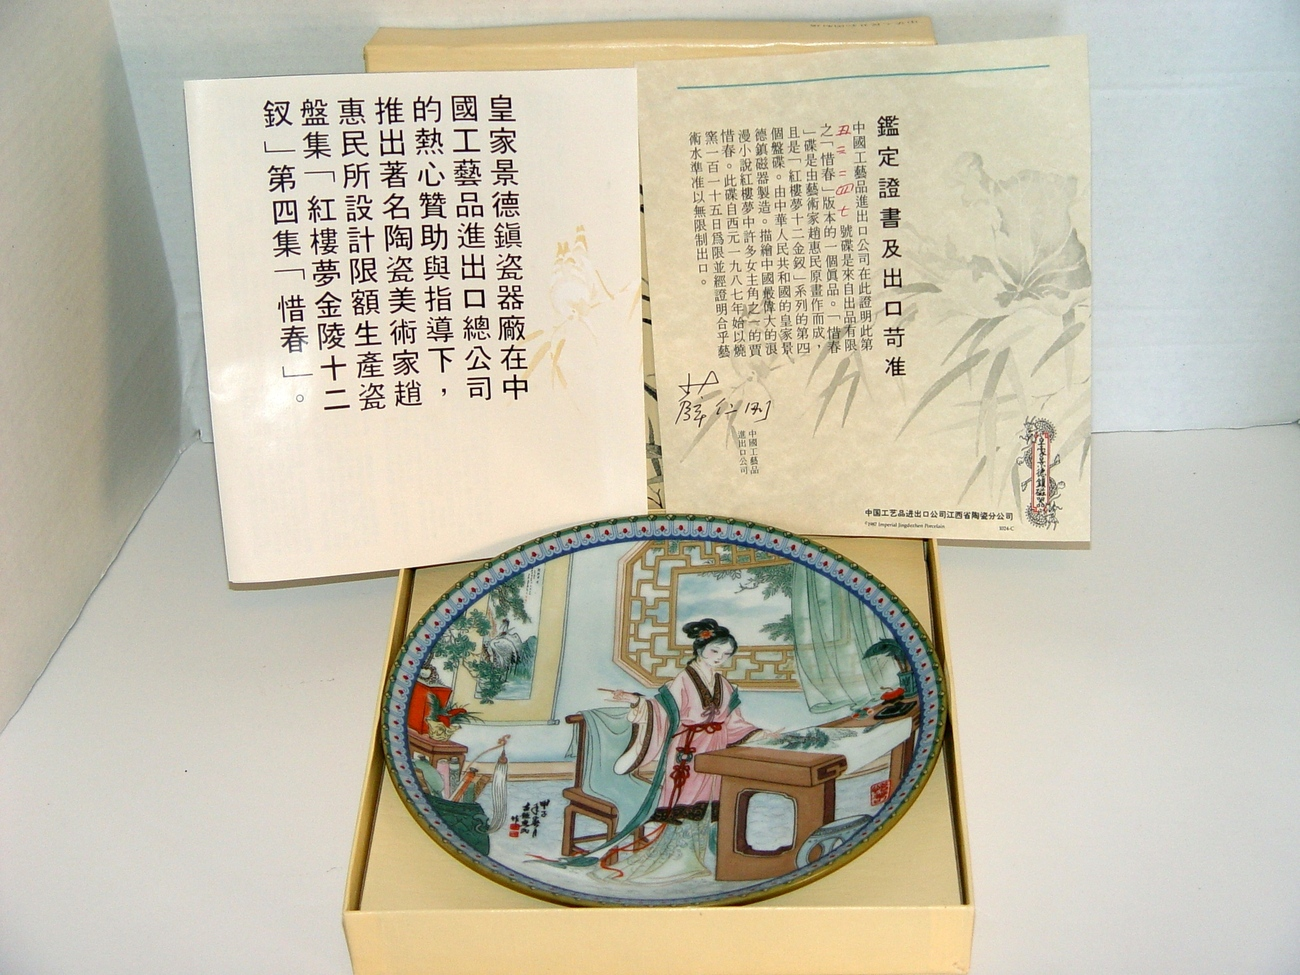 Beauties of the Red Mansion Series Plate # 4, HSI-CHUN  by Zhao Hui Min